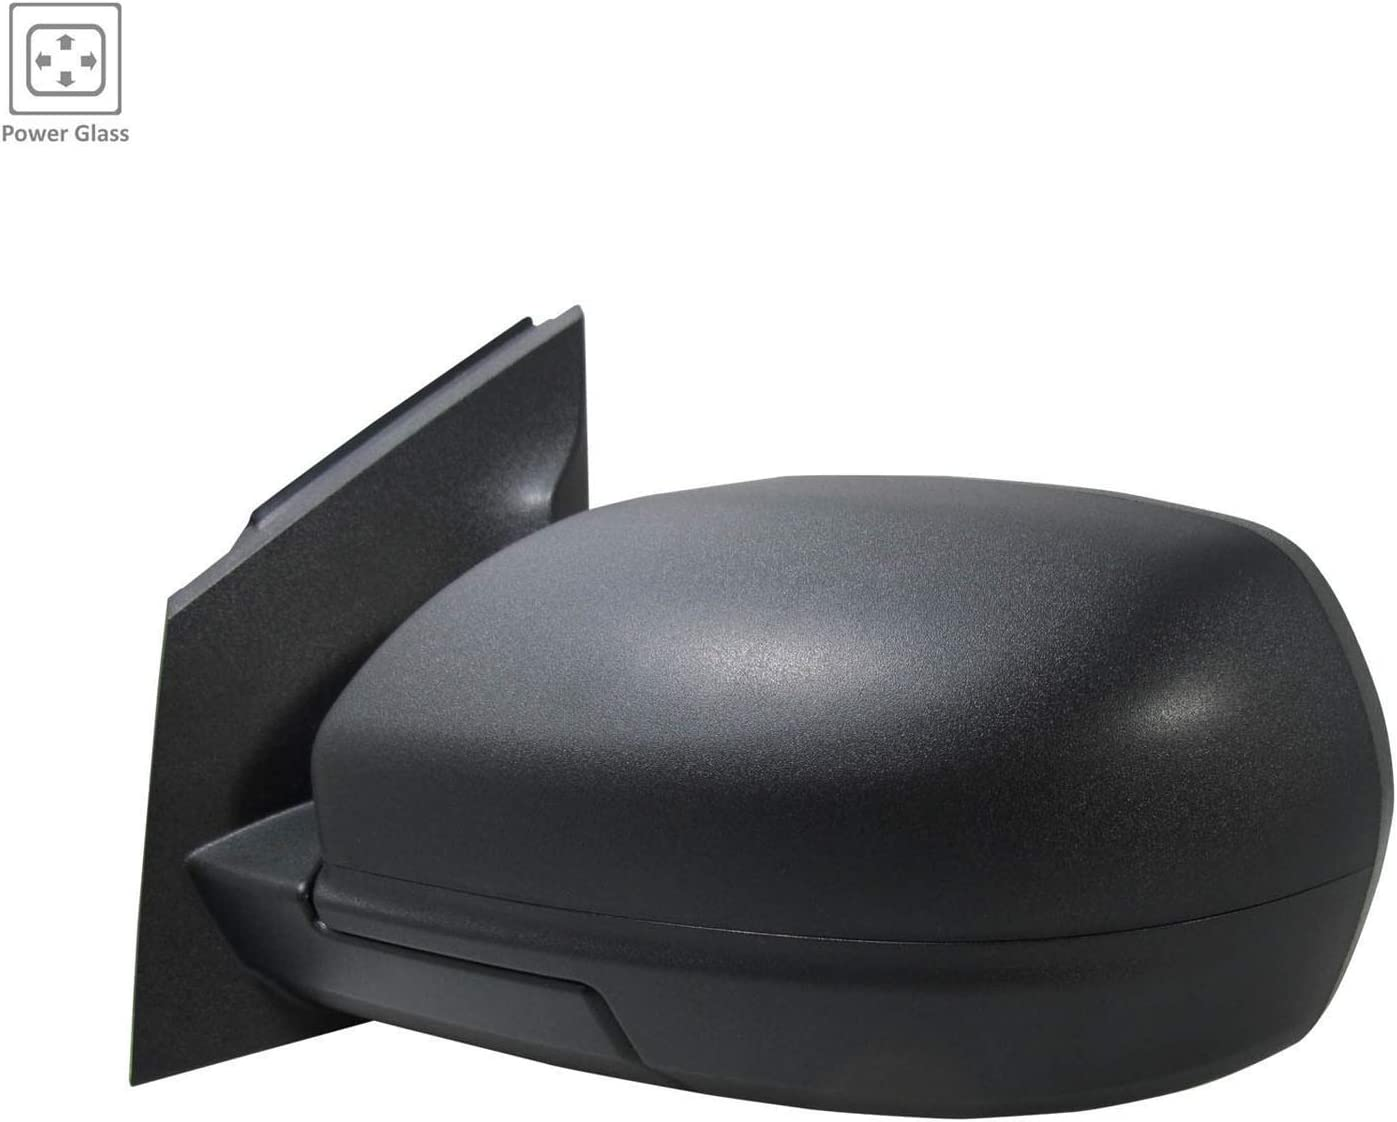 Fo Partslink FO1320580 2015-2018 Ford Focus Driver Side Power Door Mirror; With Blind Spot Glass; From 2//21//15 Production Date; Textured Cap; With Flat Glass